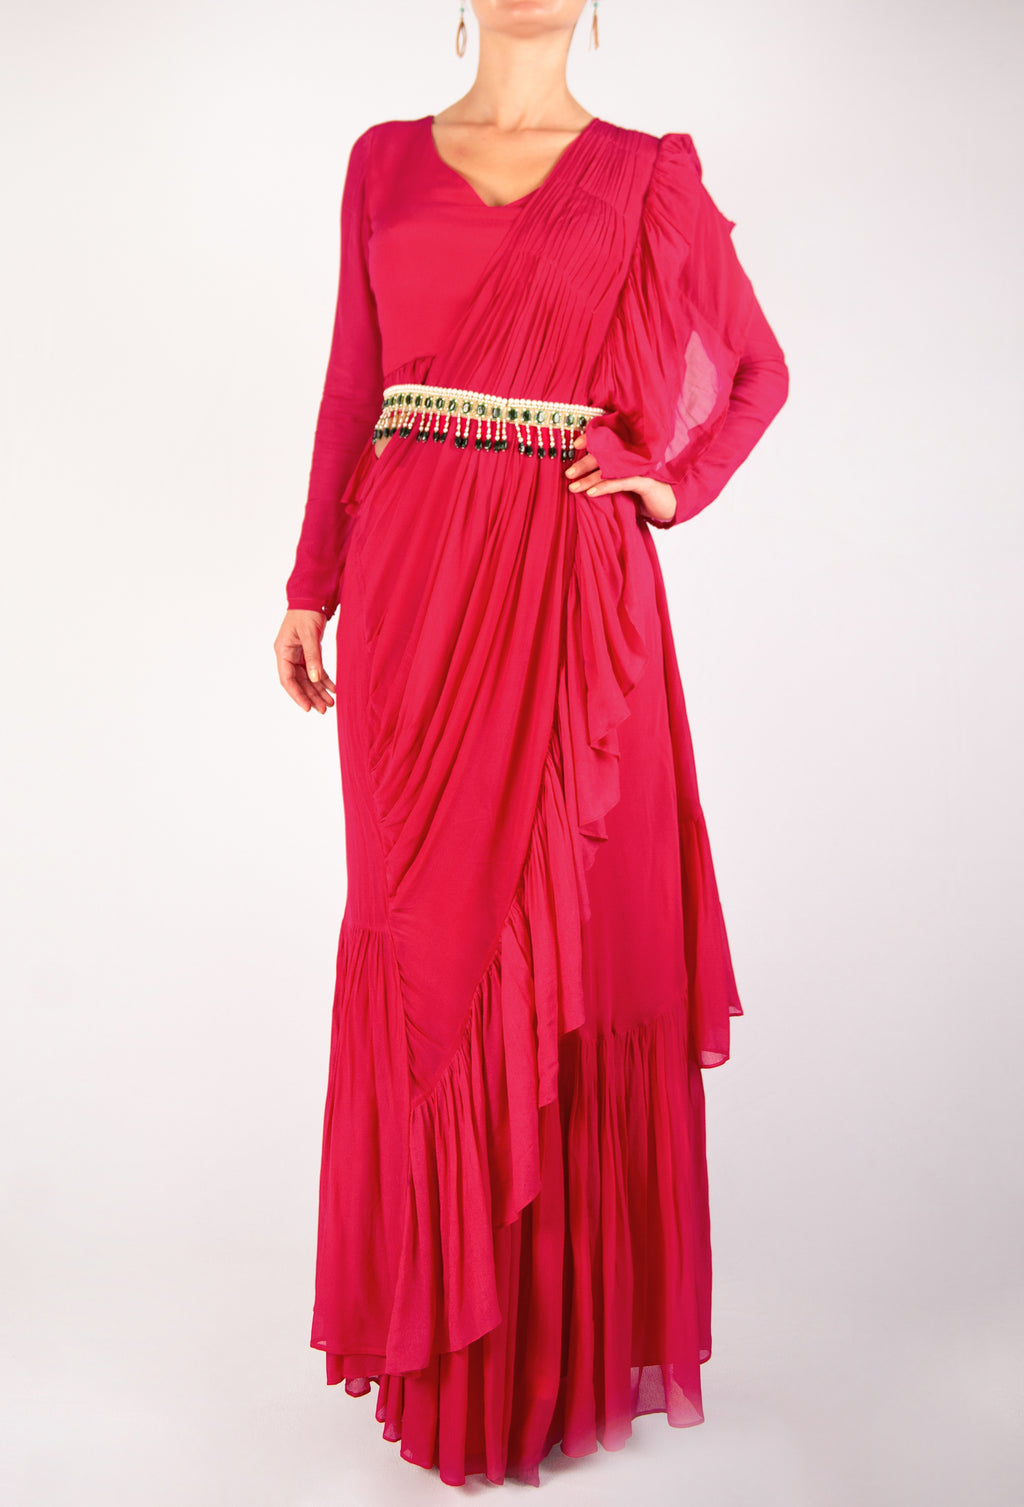 INSPIRED BY RIDHI MEHRA - DEEP PINK GEORGETTE STITCHED SAREE WITH RUFFLE DETAIL AND AN ORNATE PEARL BEADED BELT